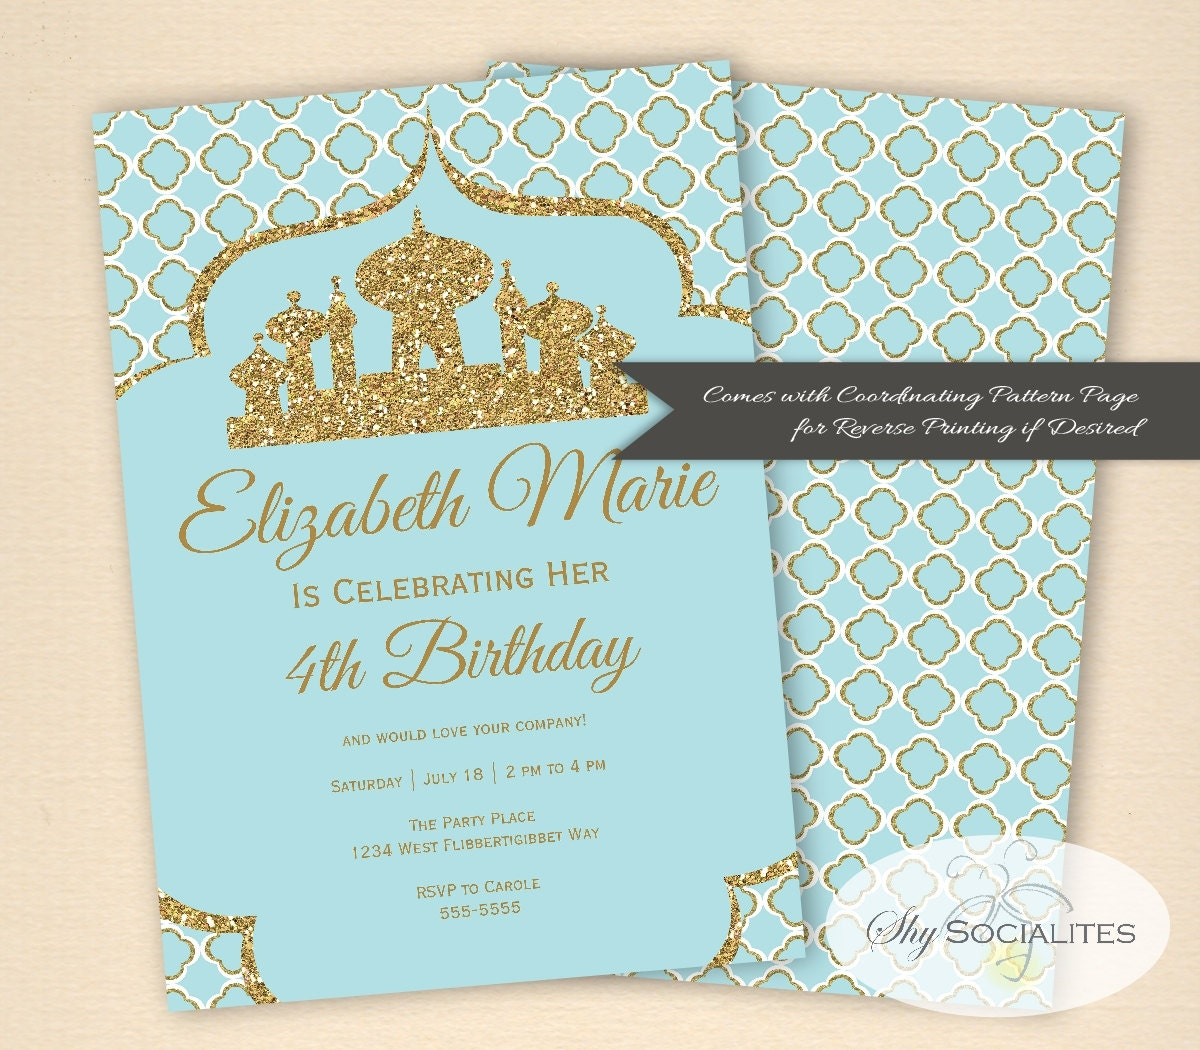 Awesome arabian party invitations pictures inspiration arabian invitation aladdin magic arabian nights stopboris Image collections